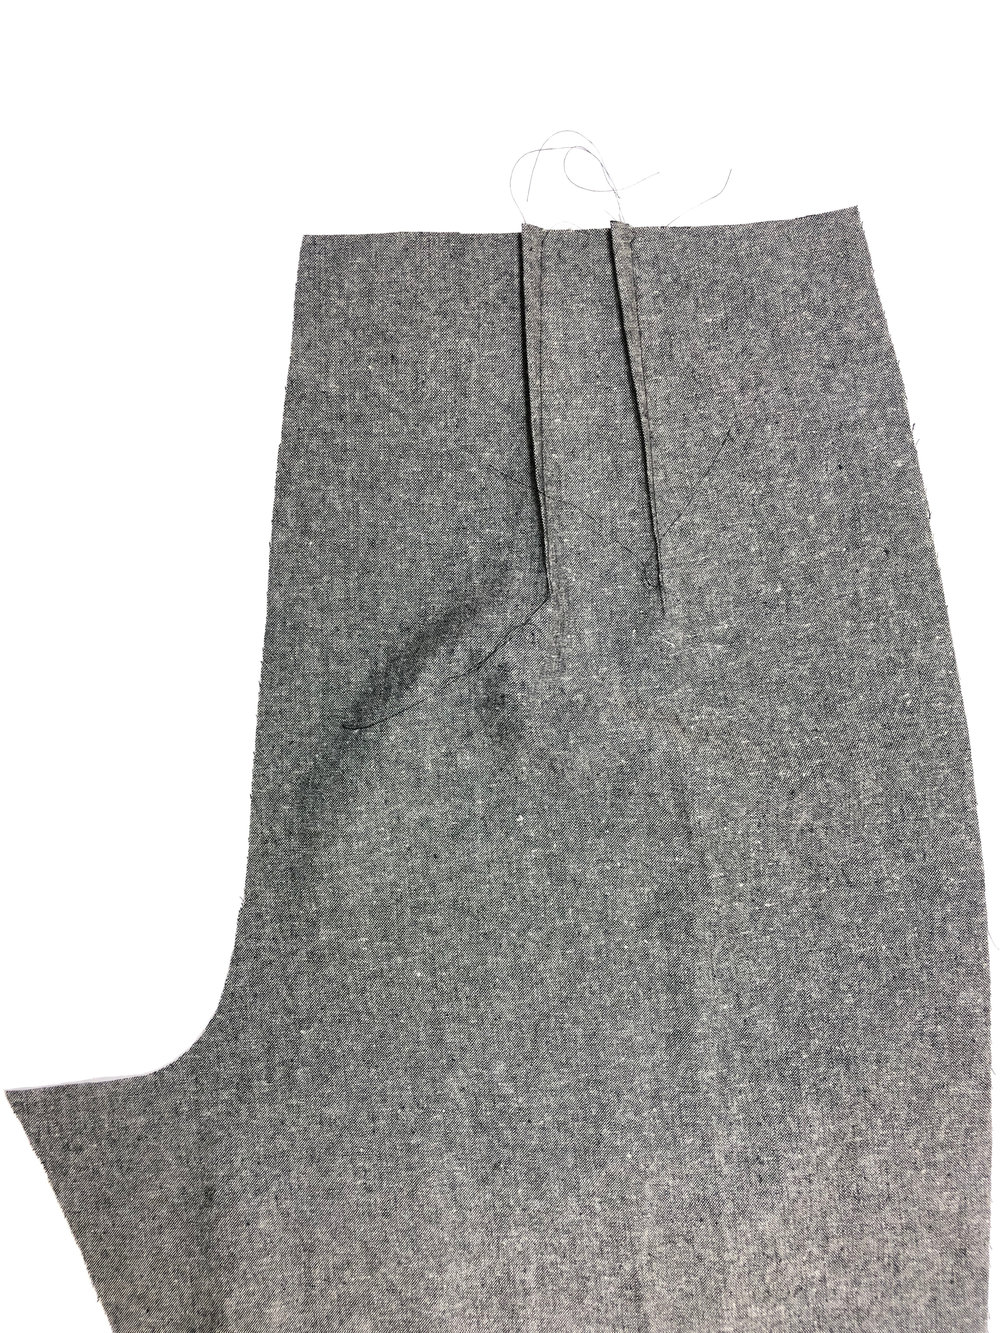 1. Stitch back pant darts from notches to dot mark, and press toward center back.